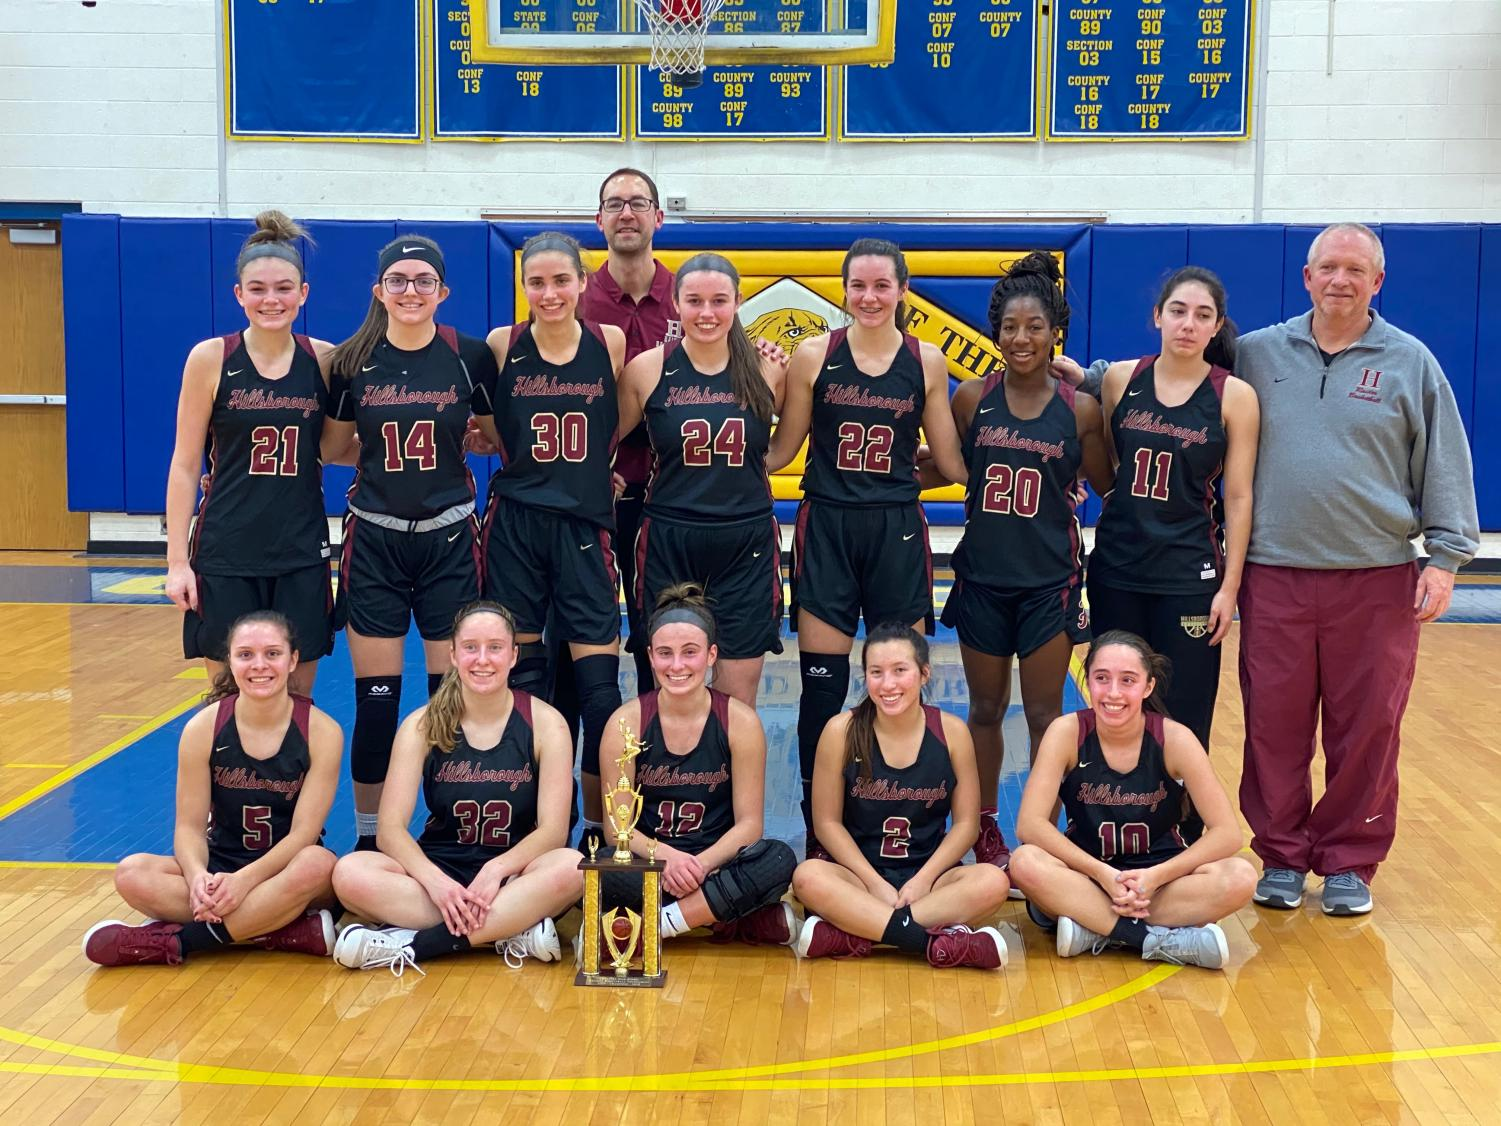 Hillsborough's Lady Raiders pose after to winning the holiday tournament.